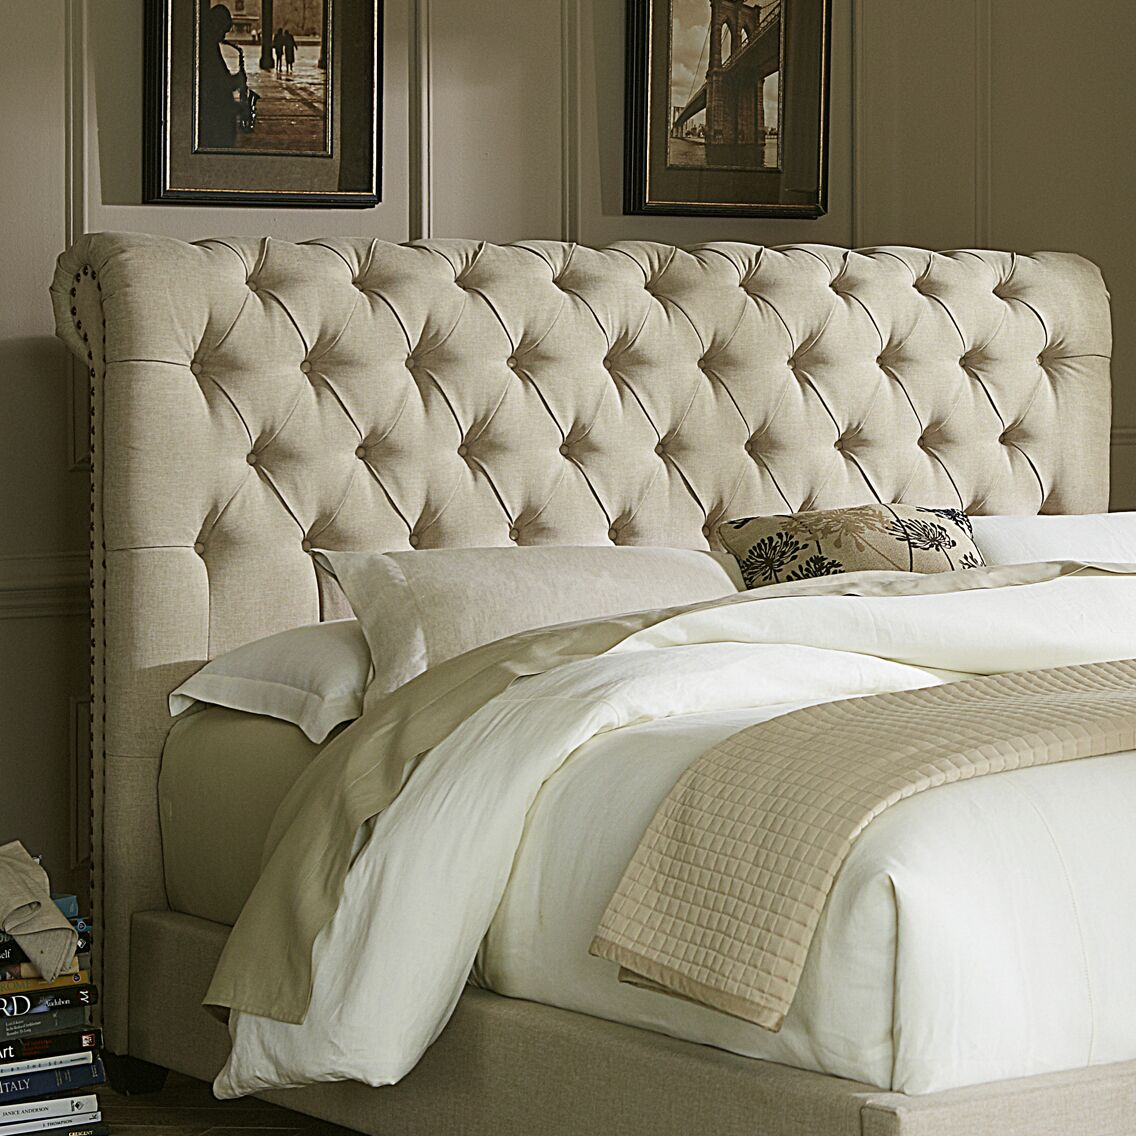 Dellinger Upholstered Sleigh Headboard Size: Queen, Color: Beige